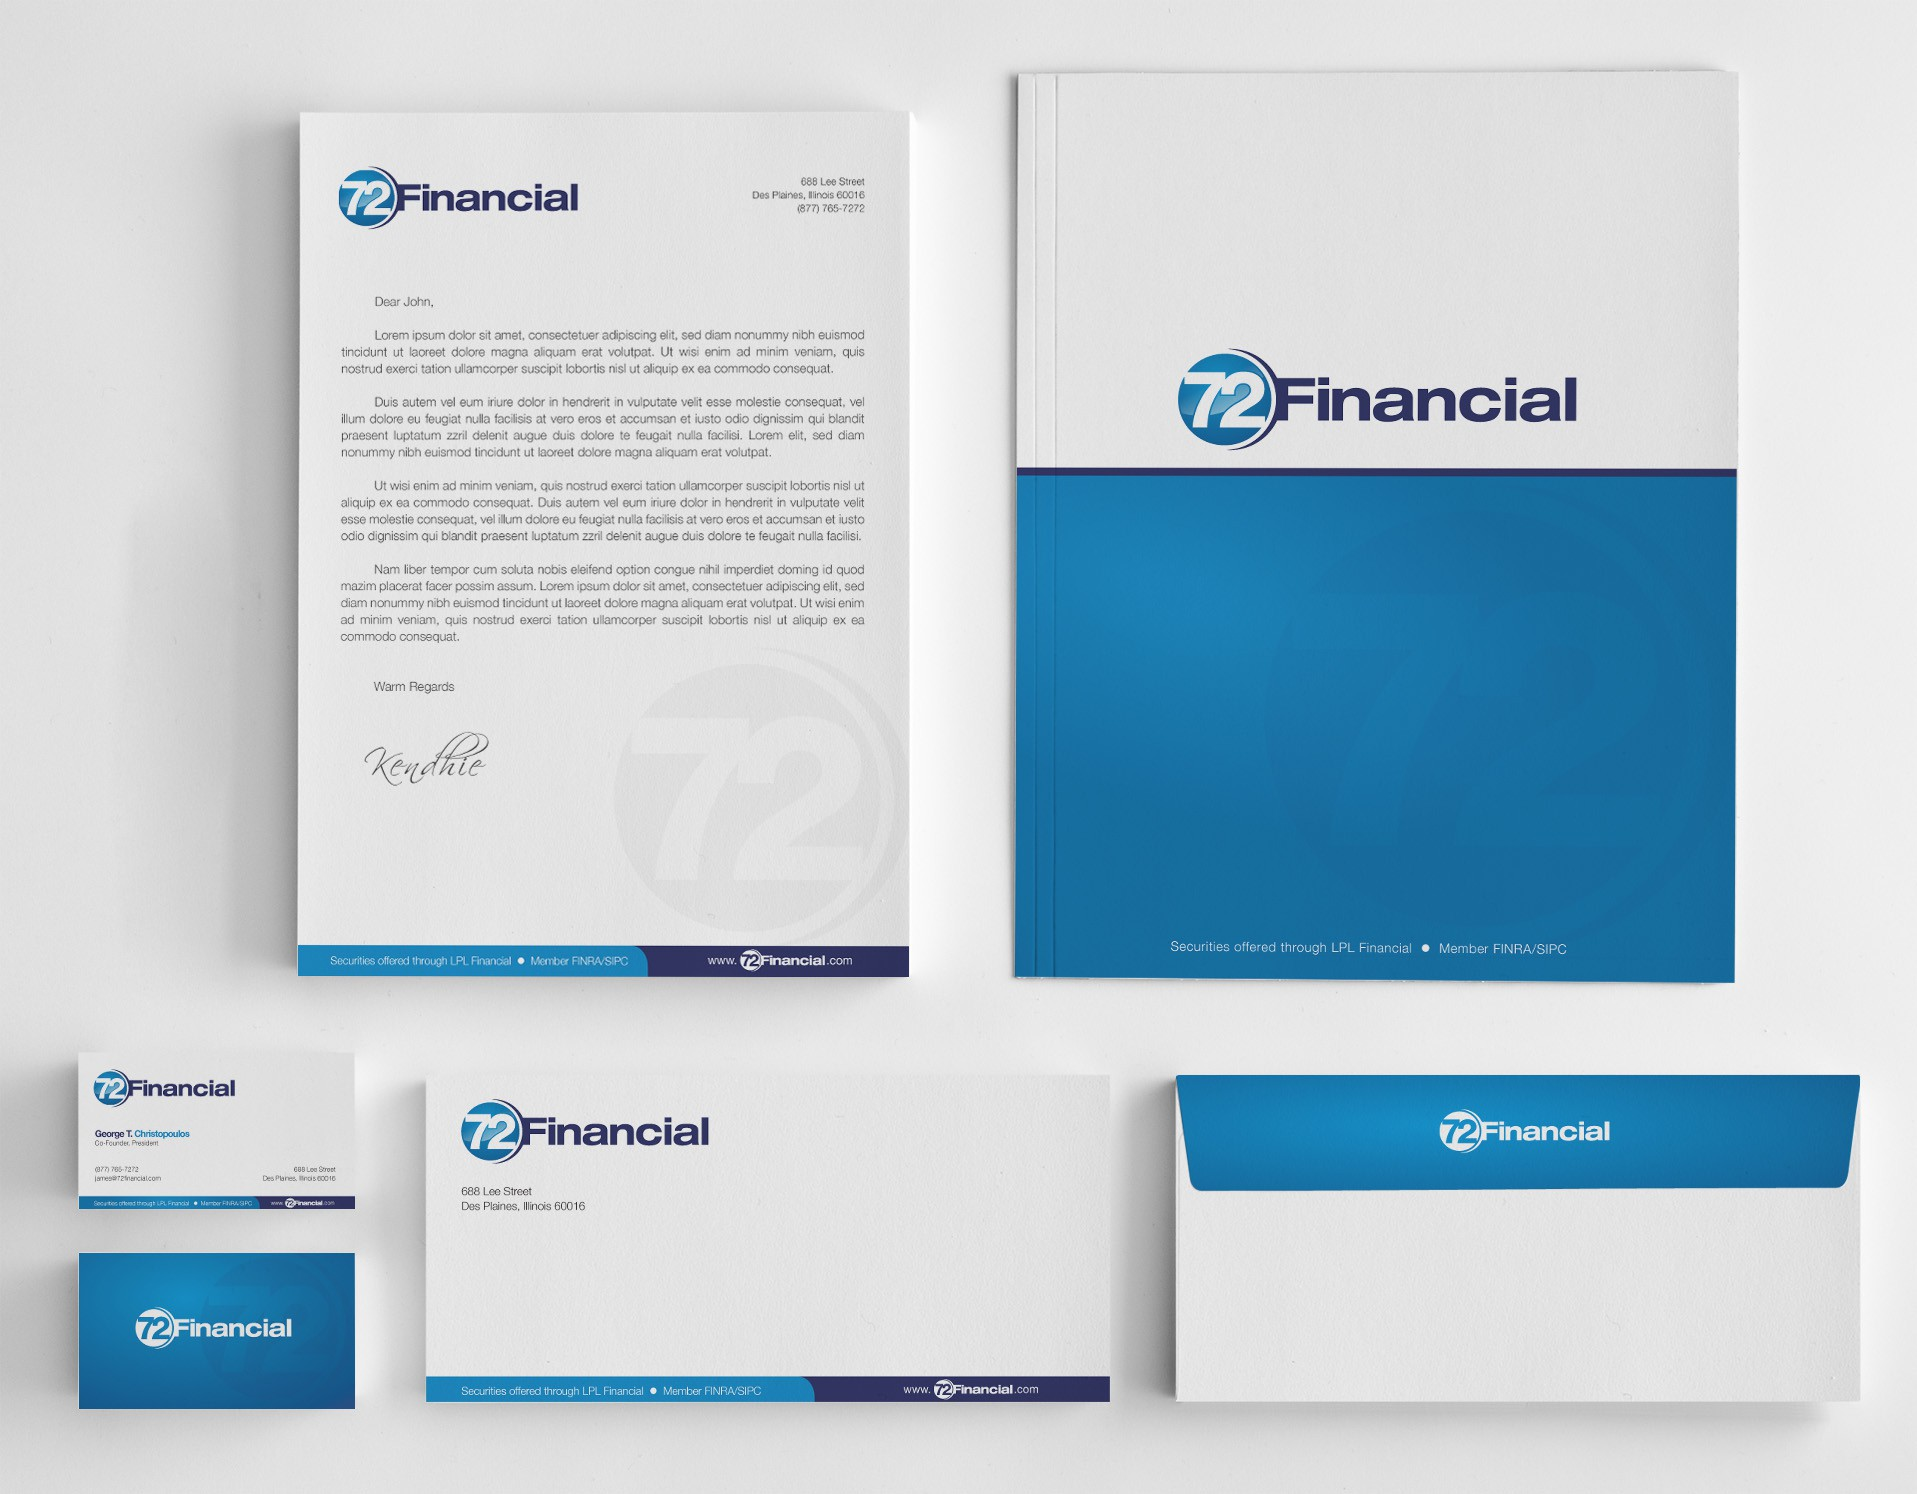 Create the next stationery for 72 Financial